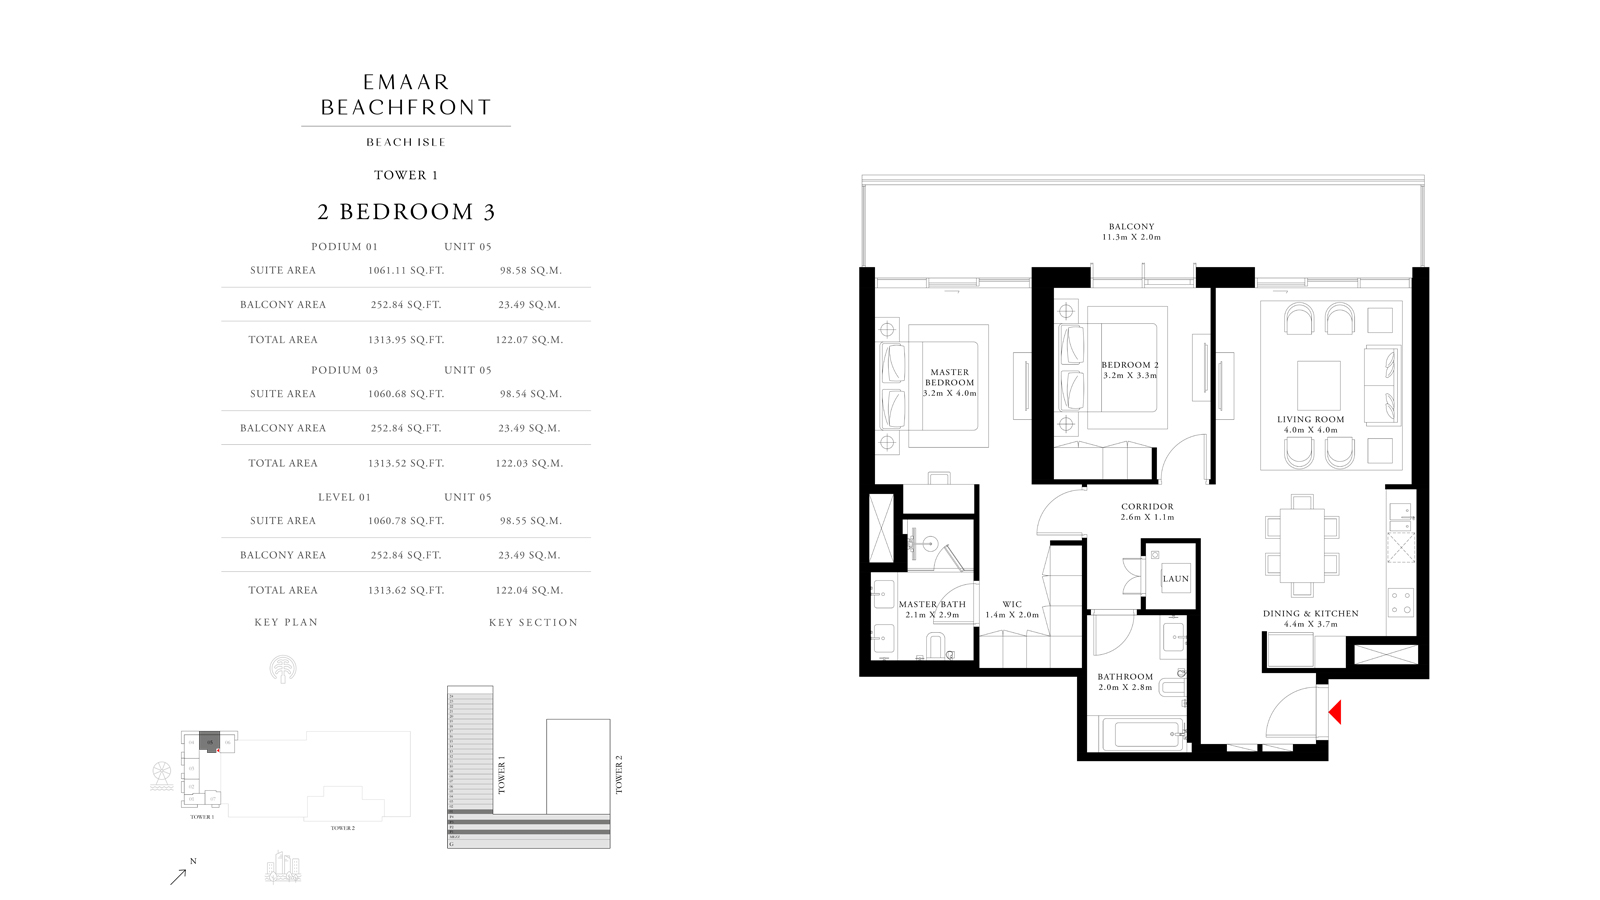 2 Bedroom 3 Tower 1, Size 1313    sq. ft.